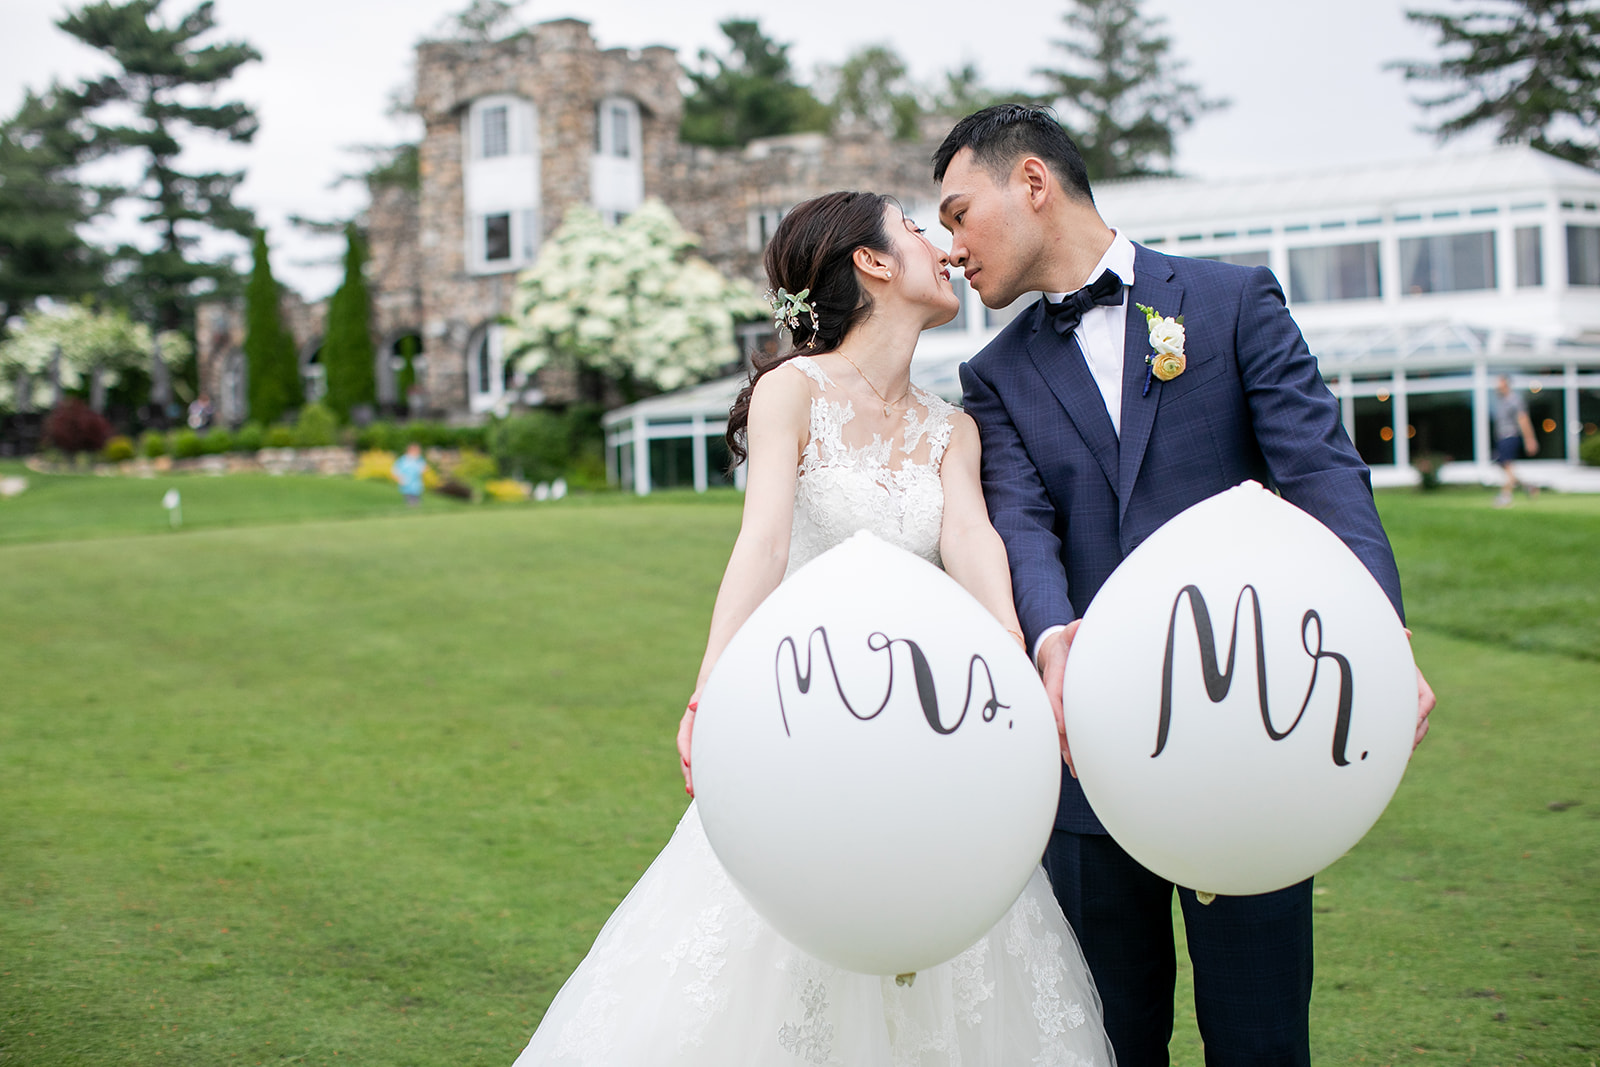 Using balloons as props for your wedding or engagement photoshoot